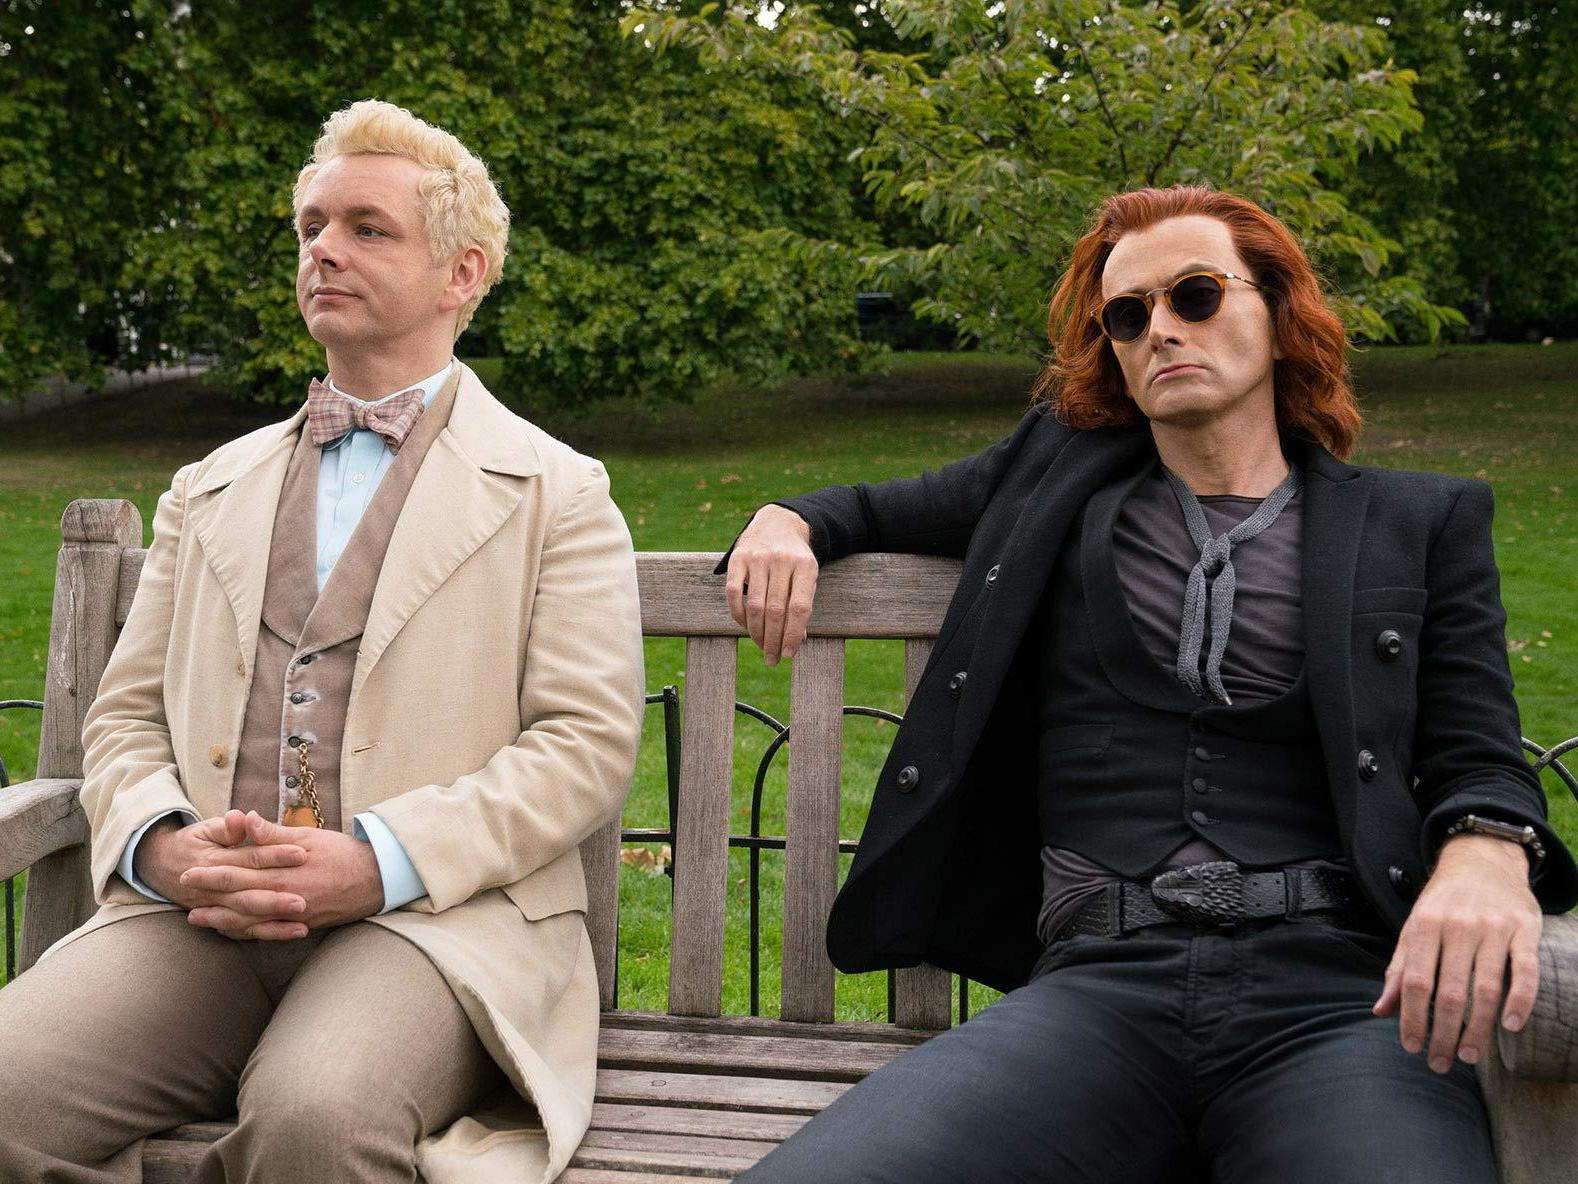 Good Omens: Netflix promises not to continue 'blasphemous' Amazon Prime series after receiving misguided petition